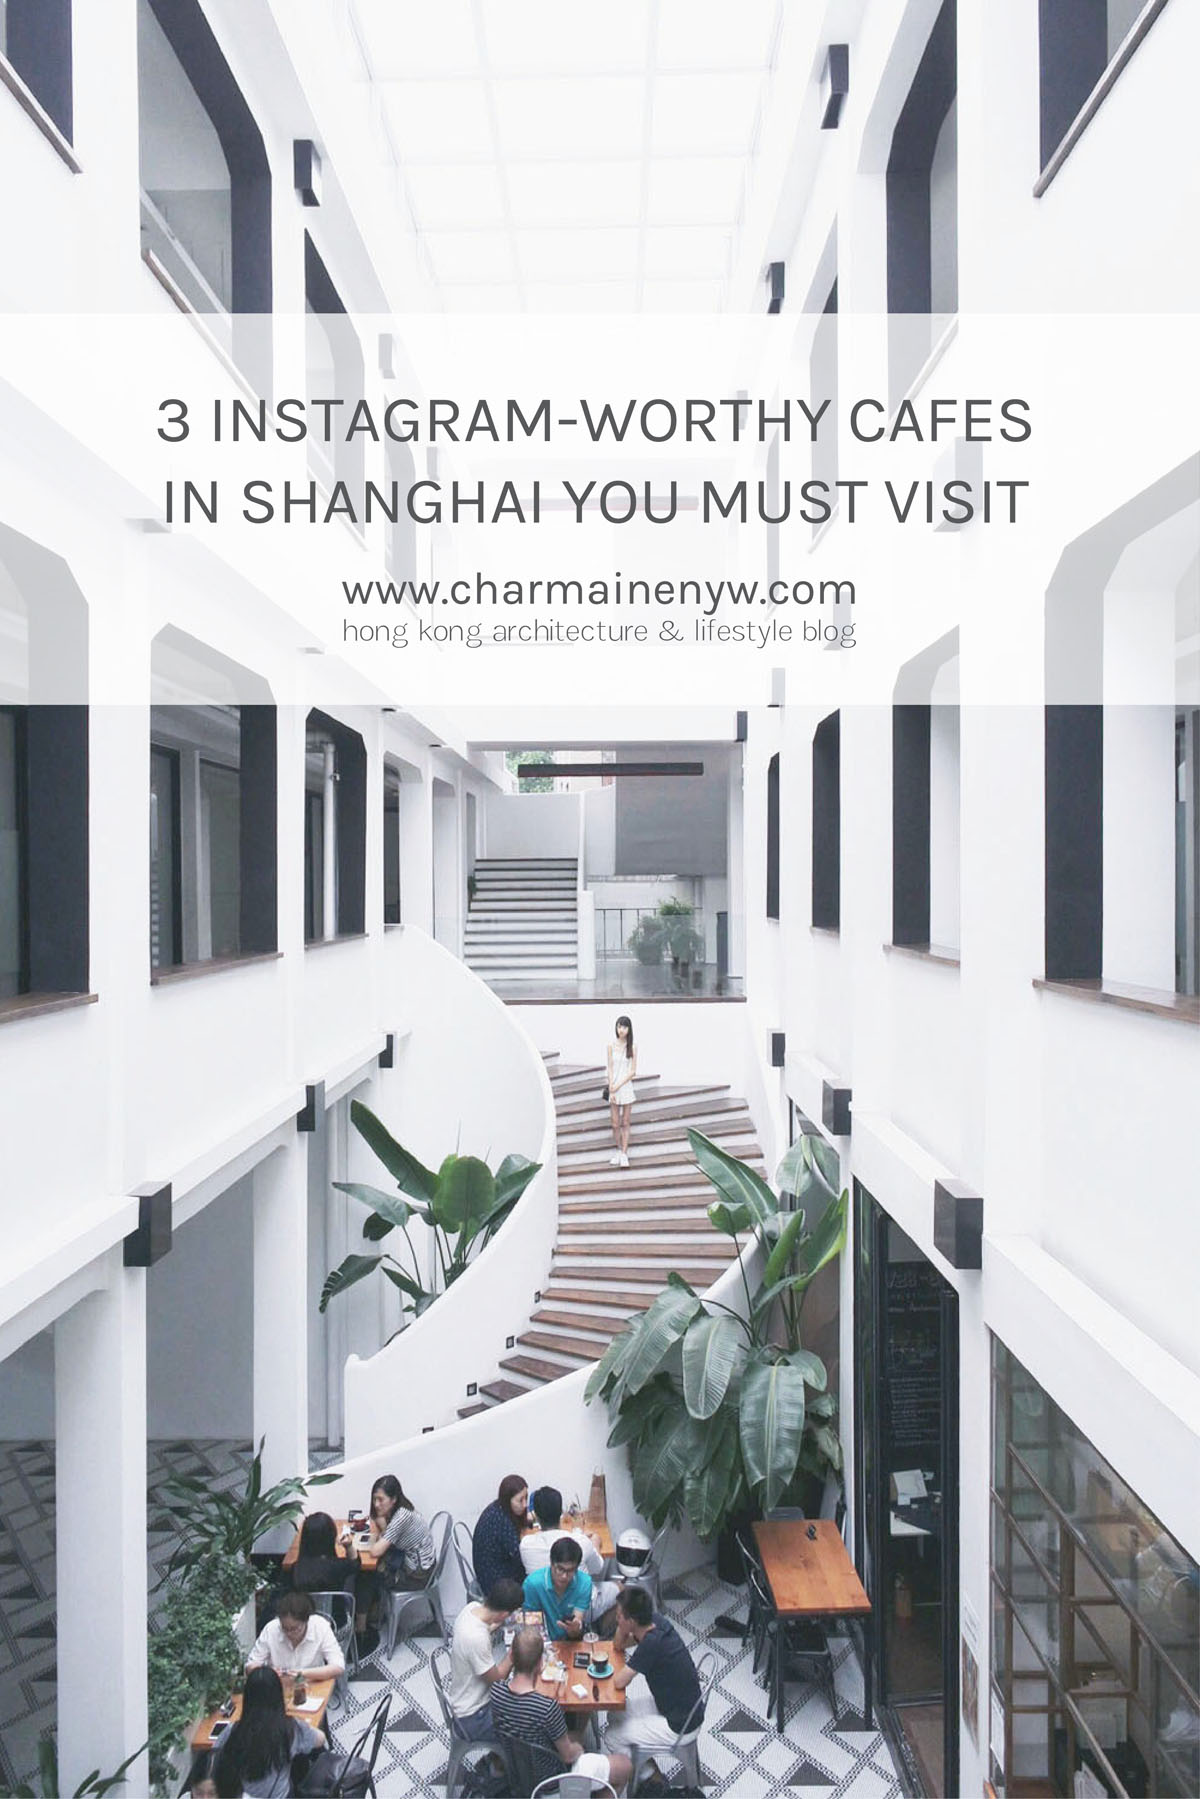 Instagram-worthy cafés in Shanghai - Seesaw Coffee